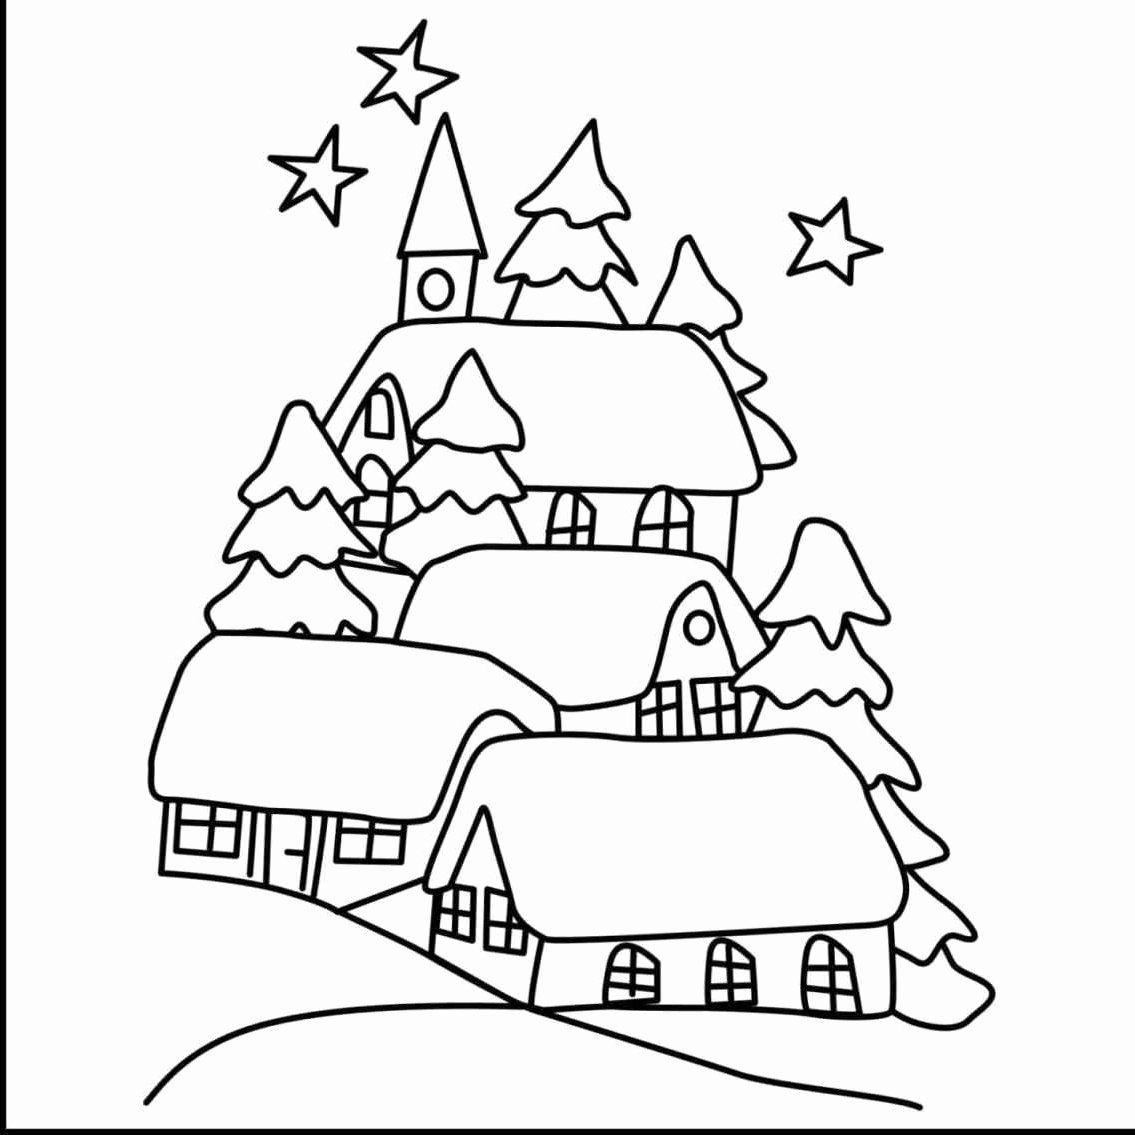 Nature Coloring Pages For Toddlers New Scenery Drawing For Kids At Getdrawings Coloring Books Christmas Coloring Sheets Coloring Pages